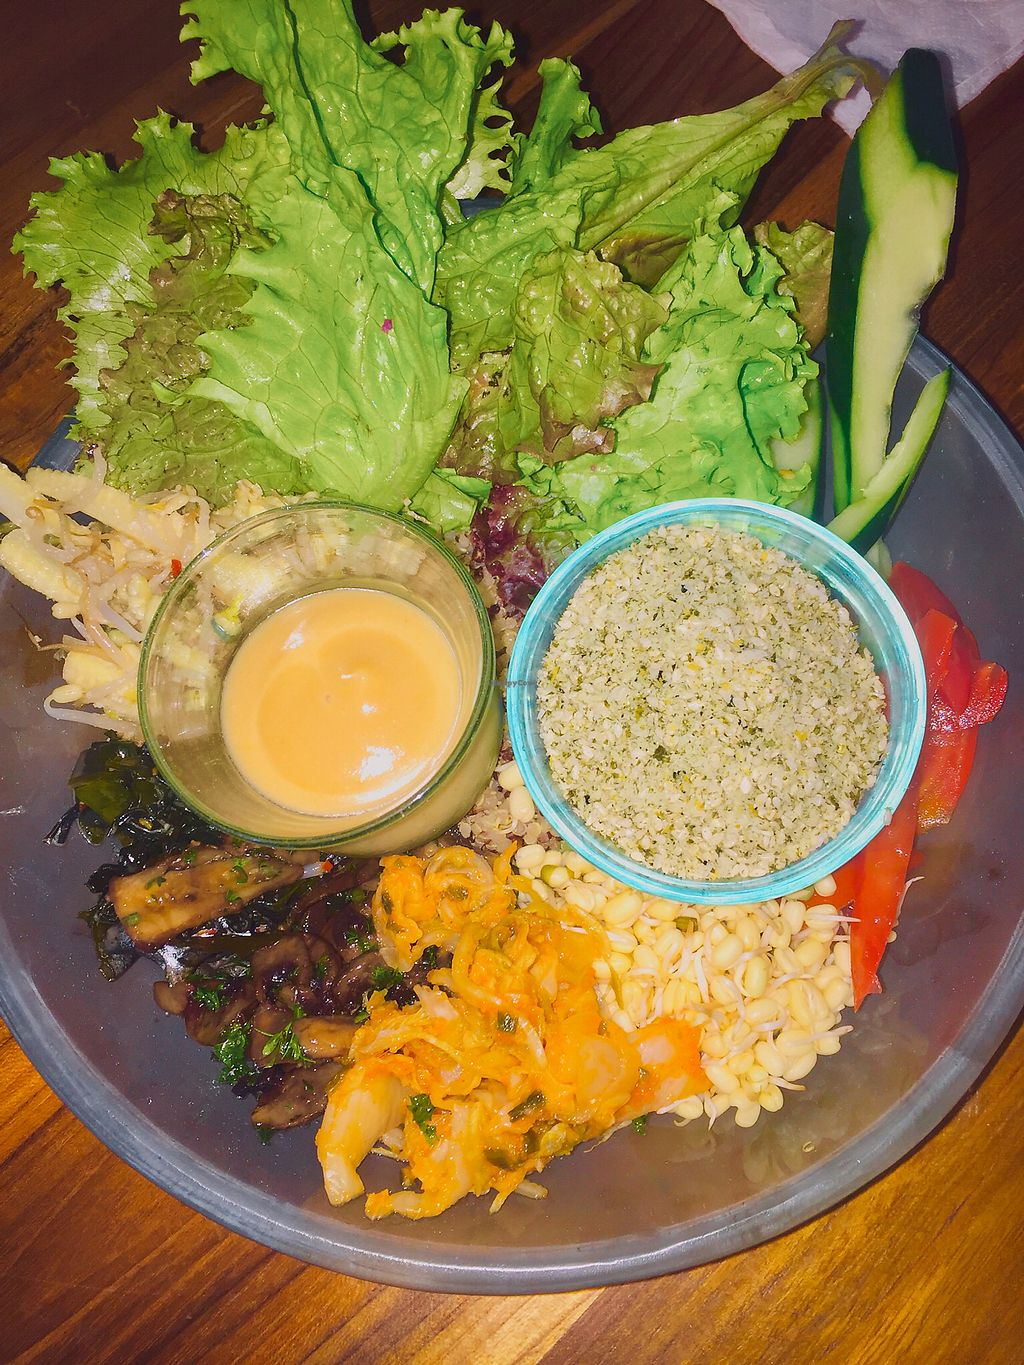 """Photo of Sayuri Healing Food  by <a href=""""/members/profile/DimenEriksen"""">DimenEriksen</a> <br/>Ocean bowl <br/> December 30, 2017  - <a href='/contact/abuse/image/83973/340785'>Report</a>"""